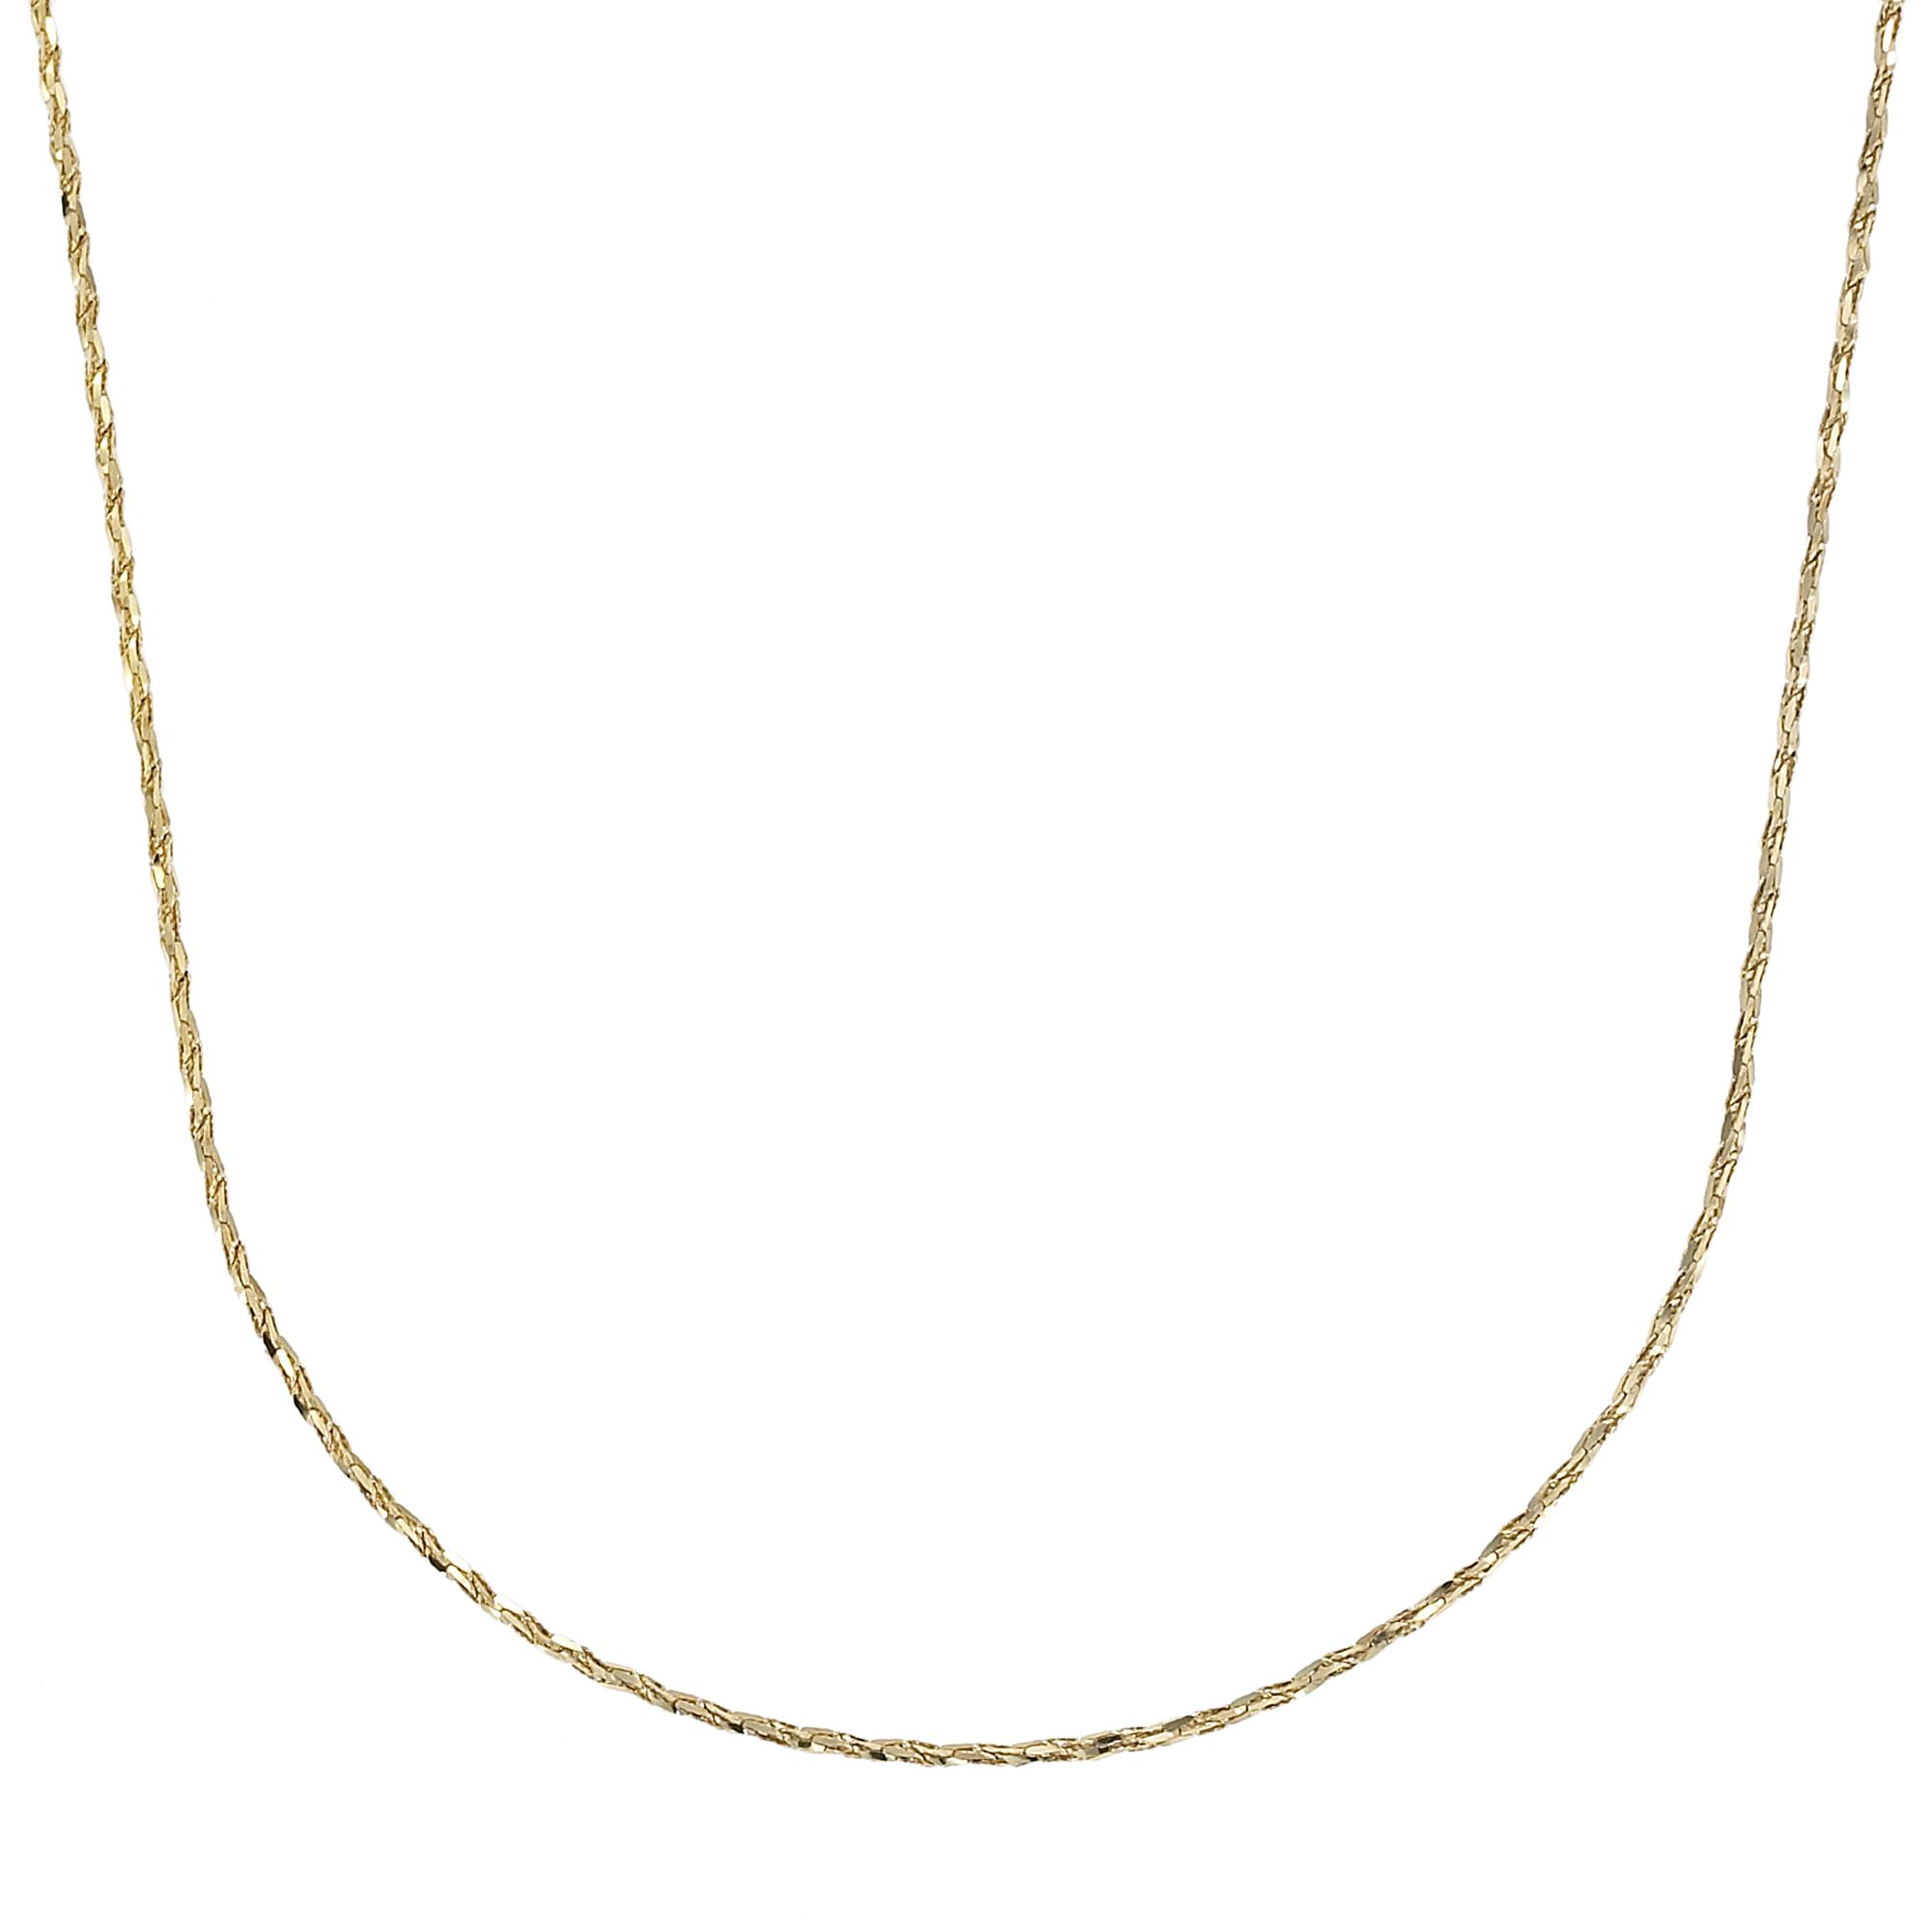 24KT Gold over Sterling Silver Tornado Necklace